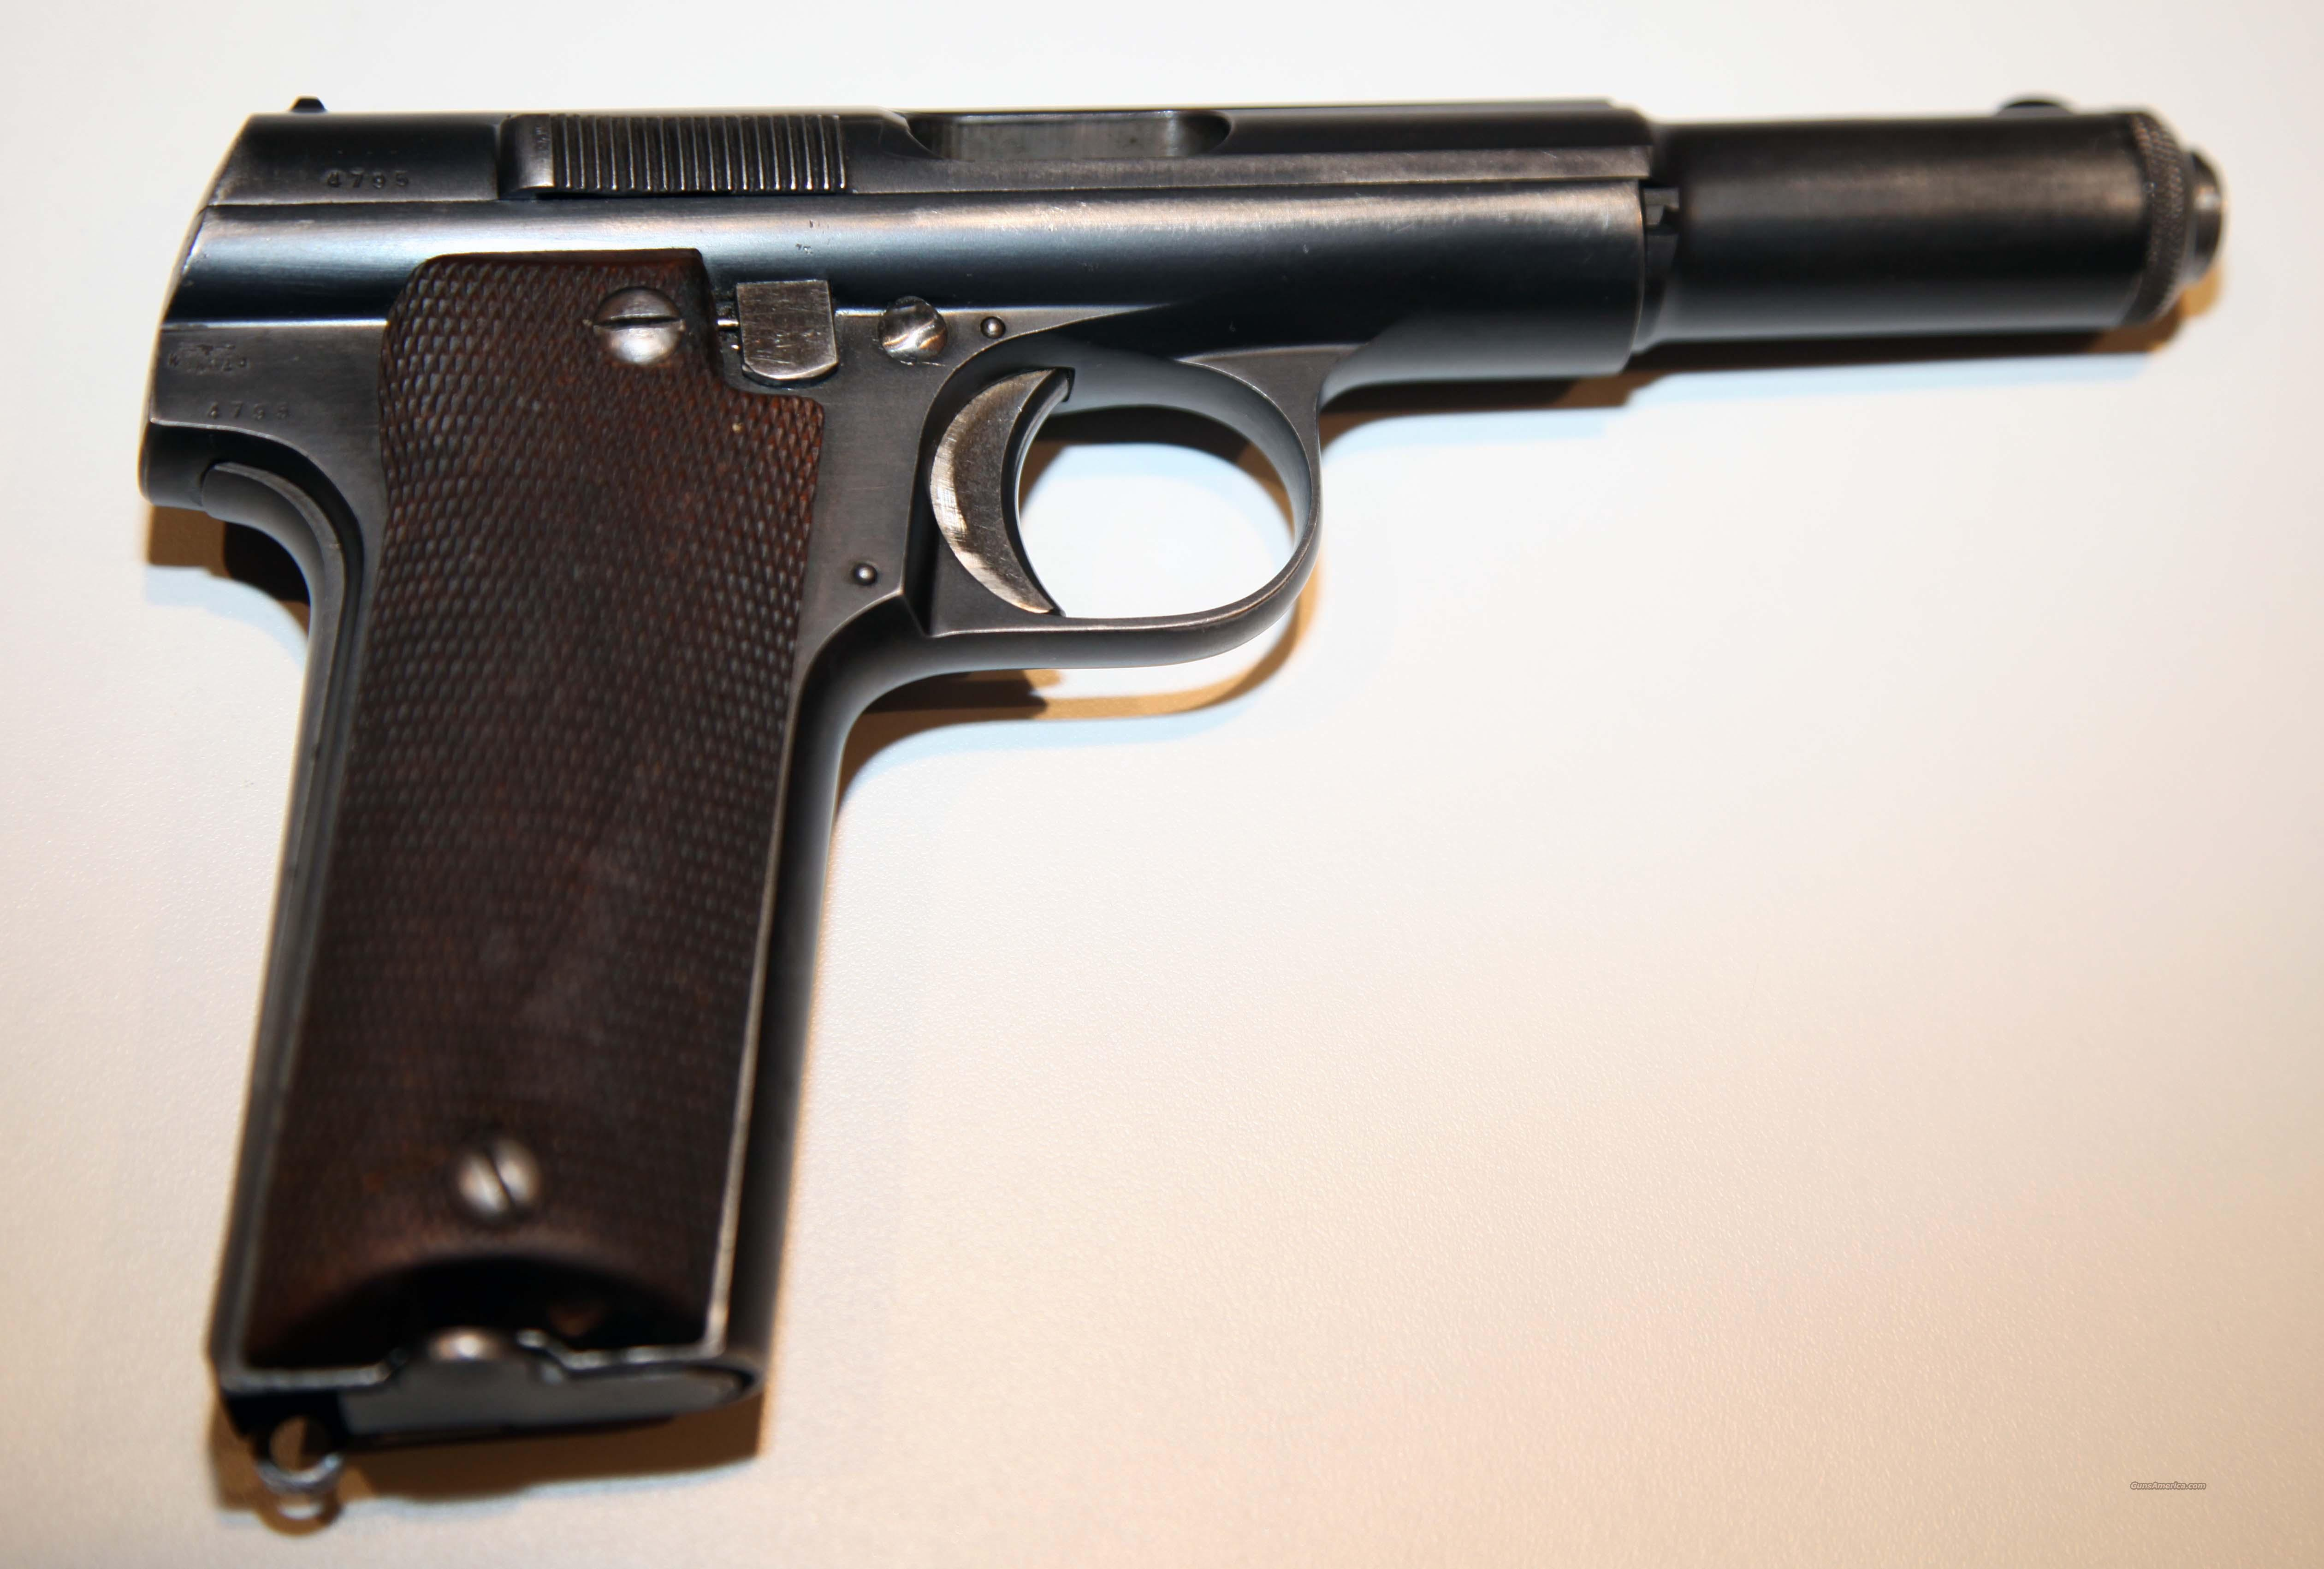 SPANISH ASTRA 600 / 9MM / NAZI MARKED  Guns > Pistols > Astra Pistols